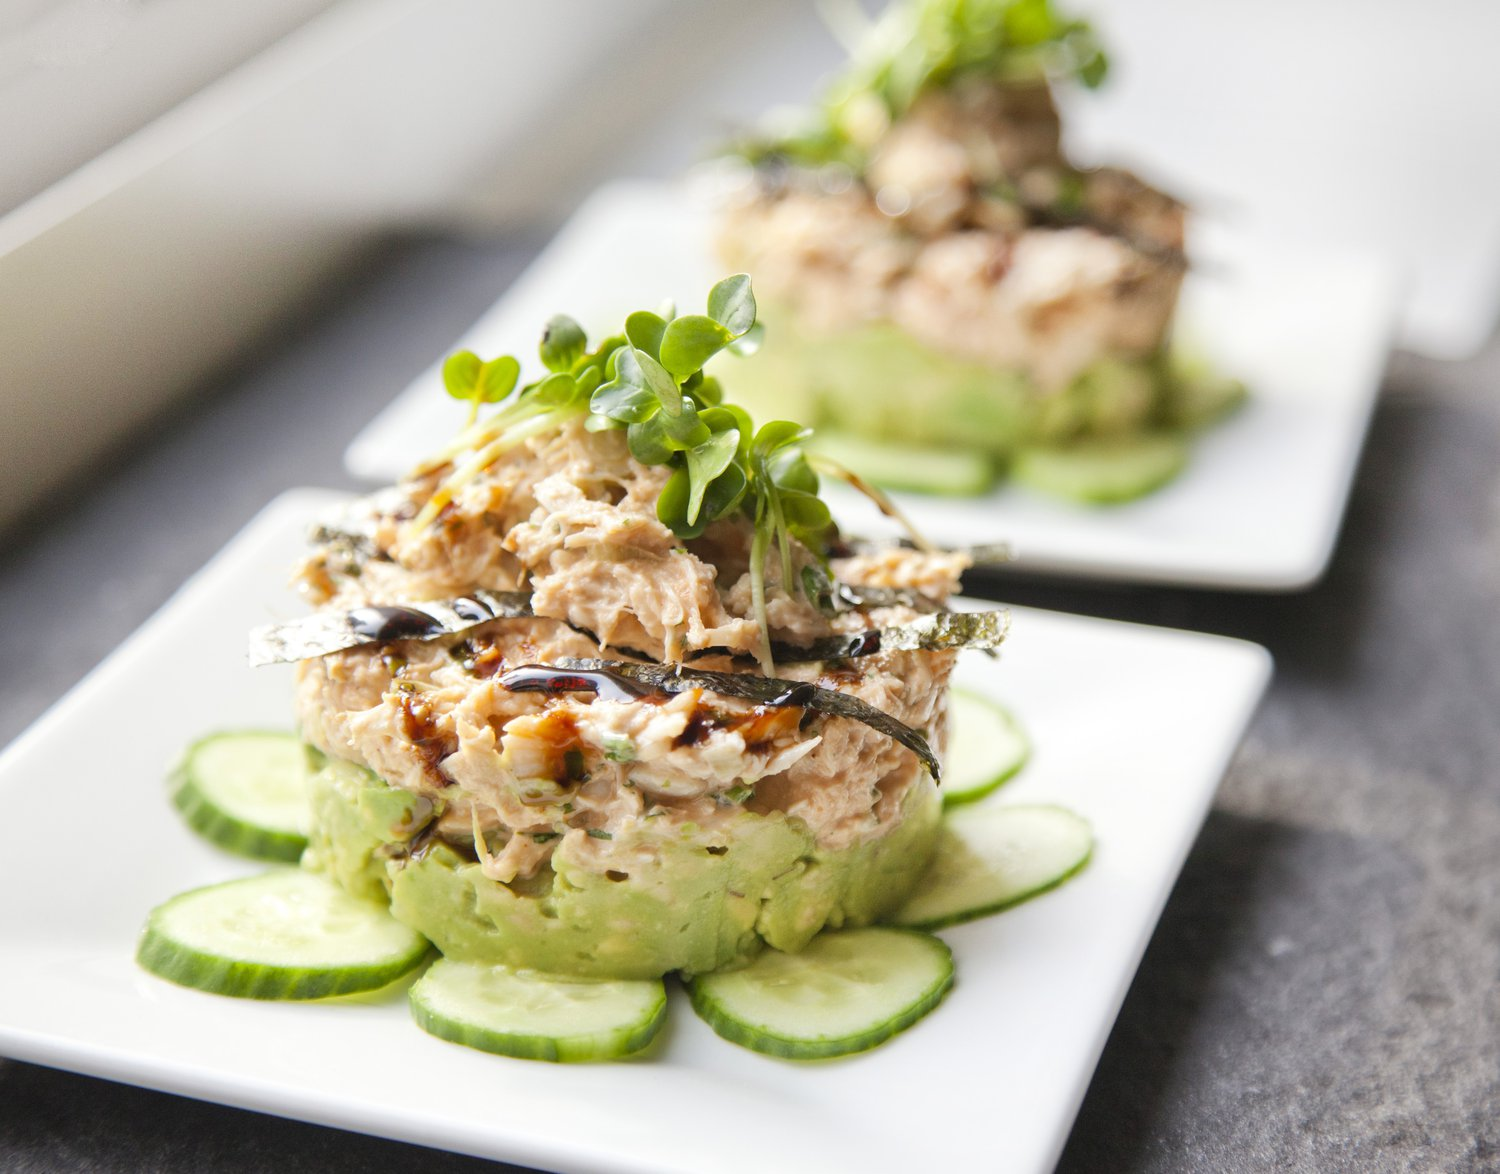 Pics Photos - Avocado And Crab Salad